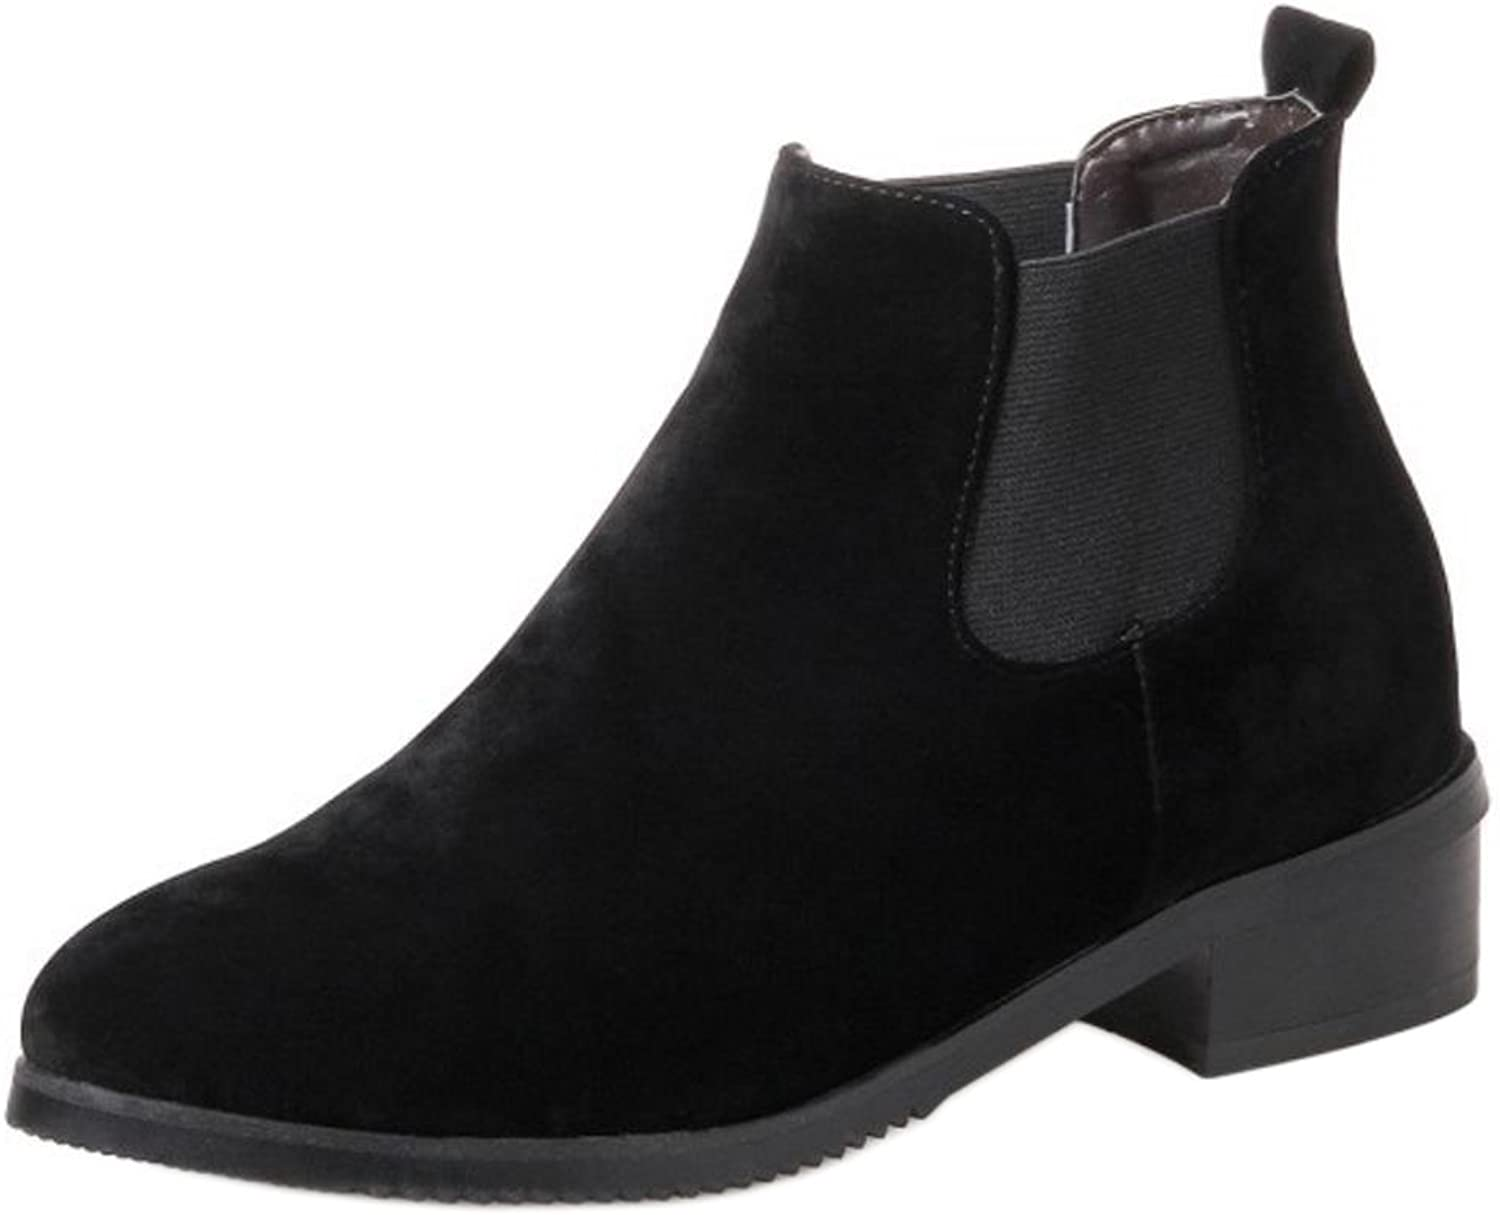 RizaBina Women Casual Square Mid Heel Pull On Chelsea Boots